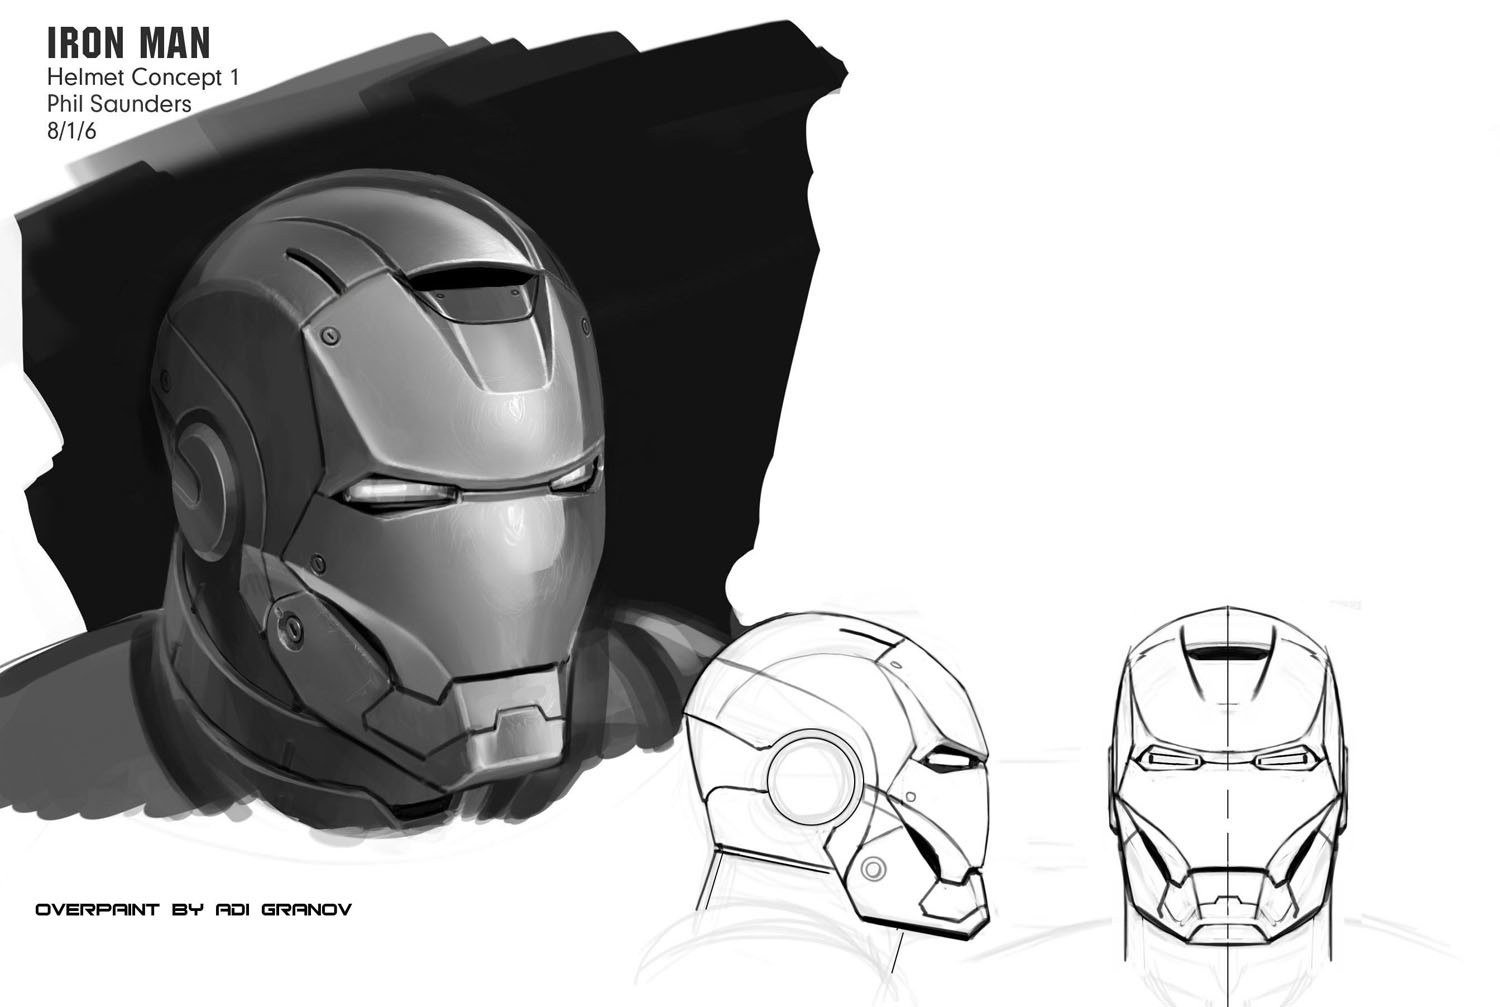 Adi Granov's paintover of the helmet, correcting my boxy proportions and adding his signature grace and flow...